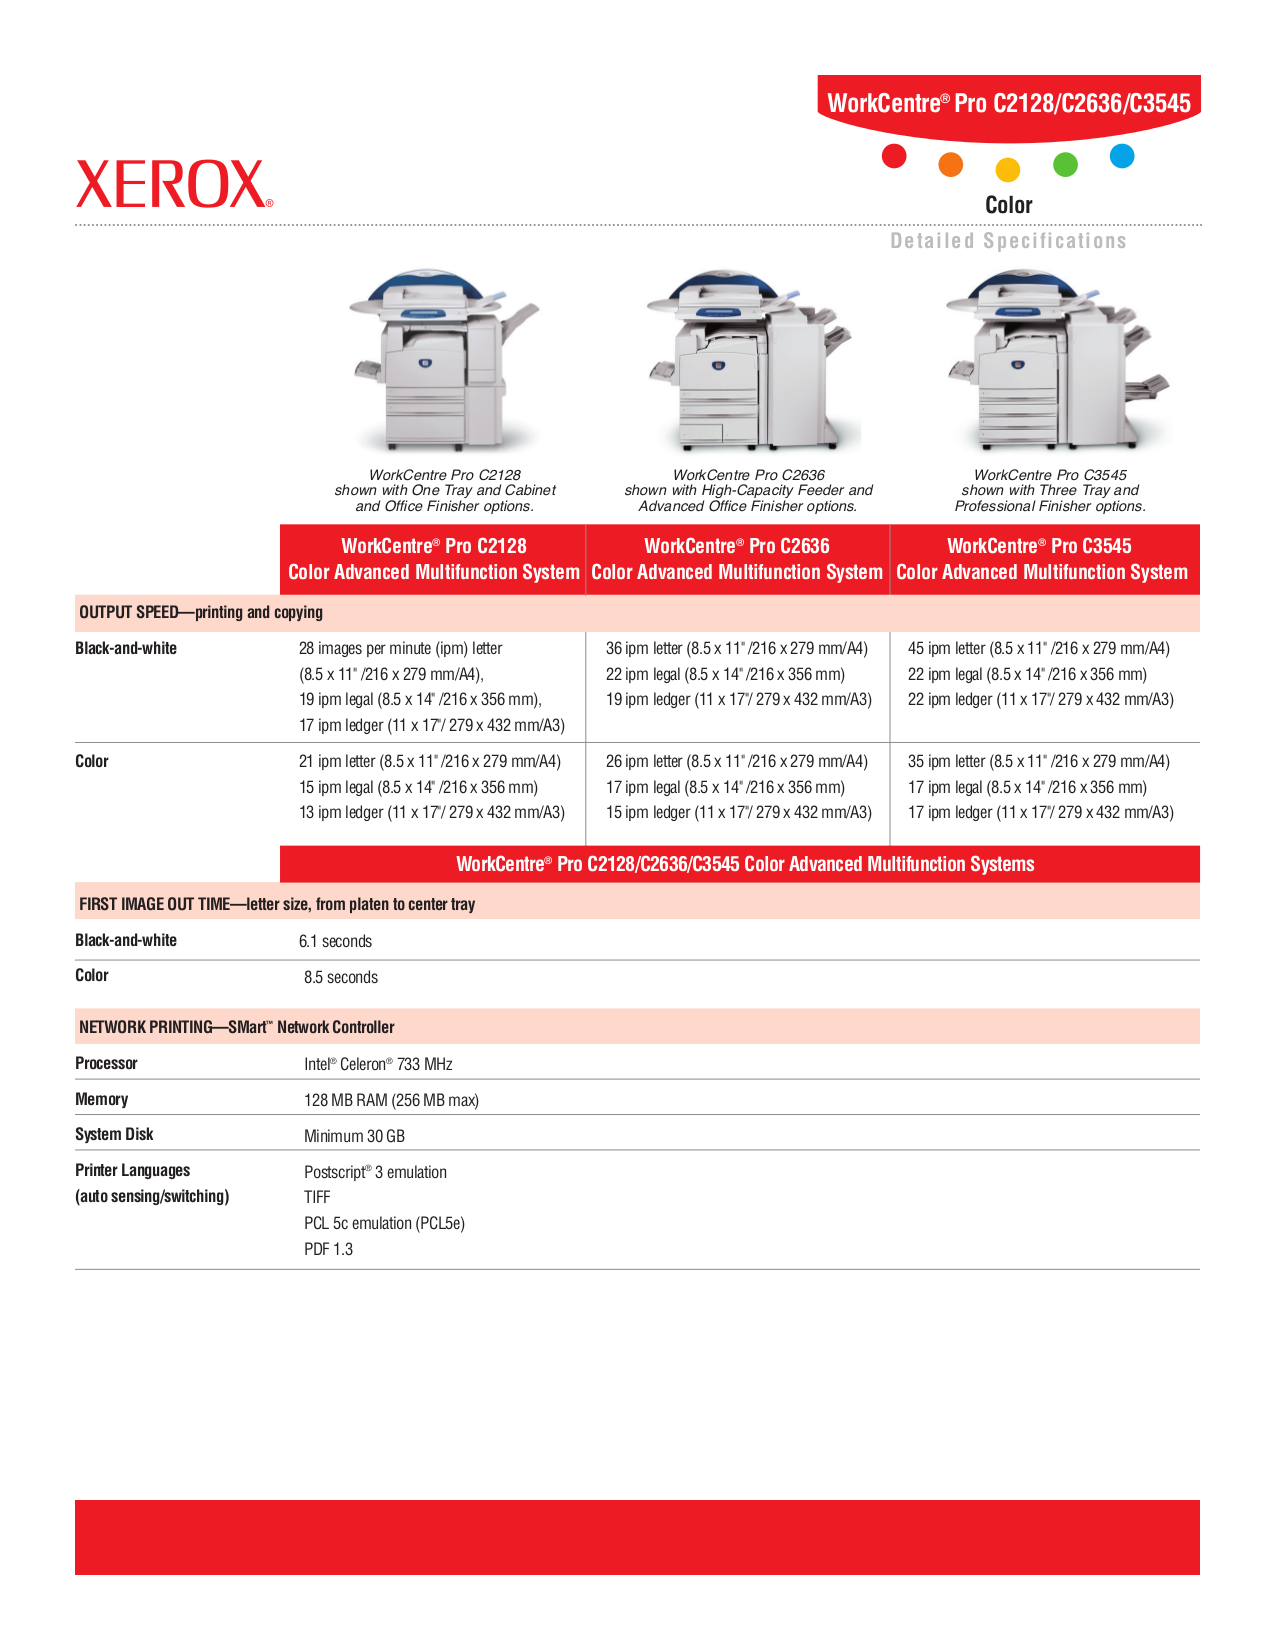 download free pdf for xerox workcentre pro c2128 multifunction rh umlib com Xerox WorkCentre 7655 Xerox WorkCentre 7535